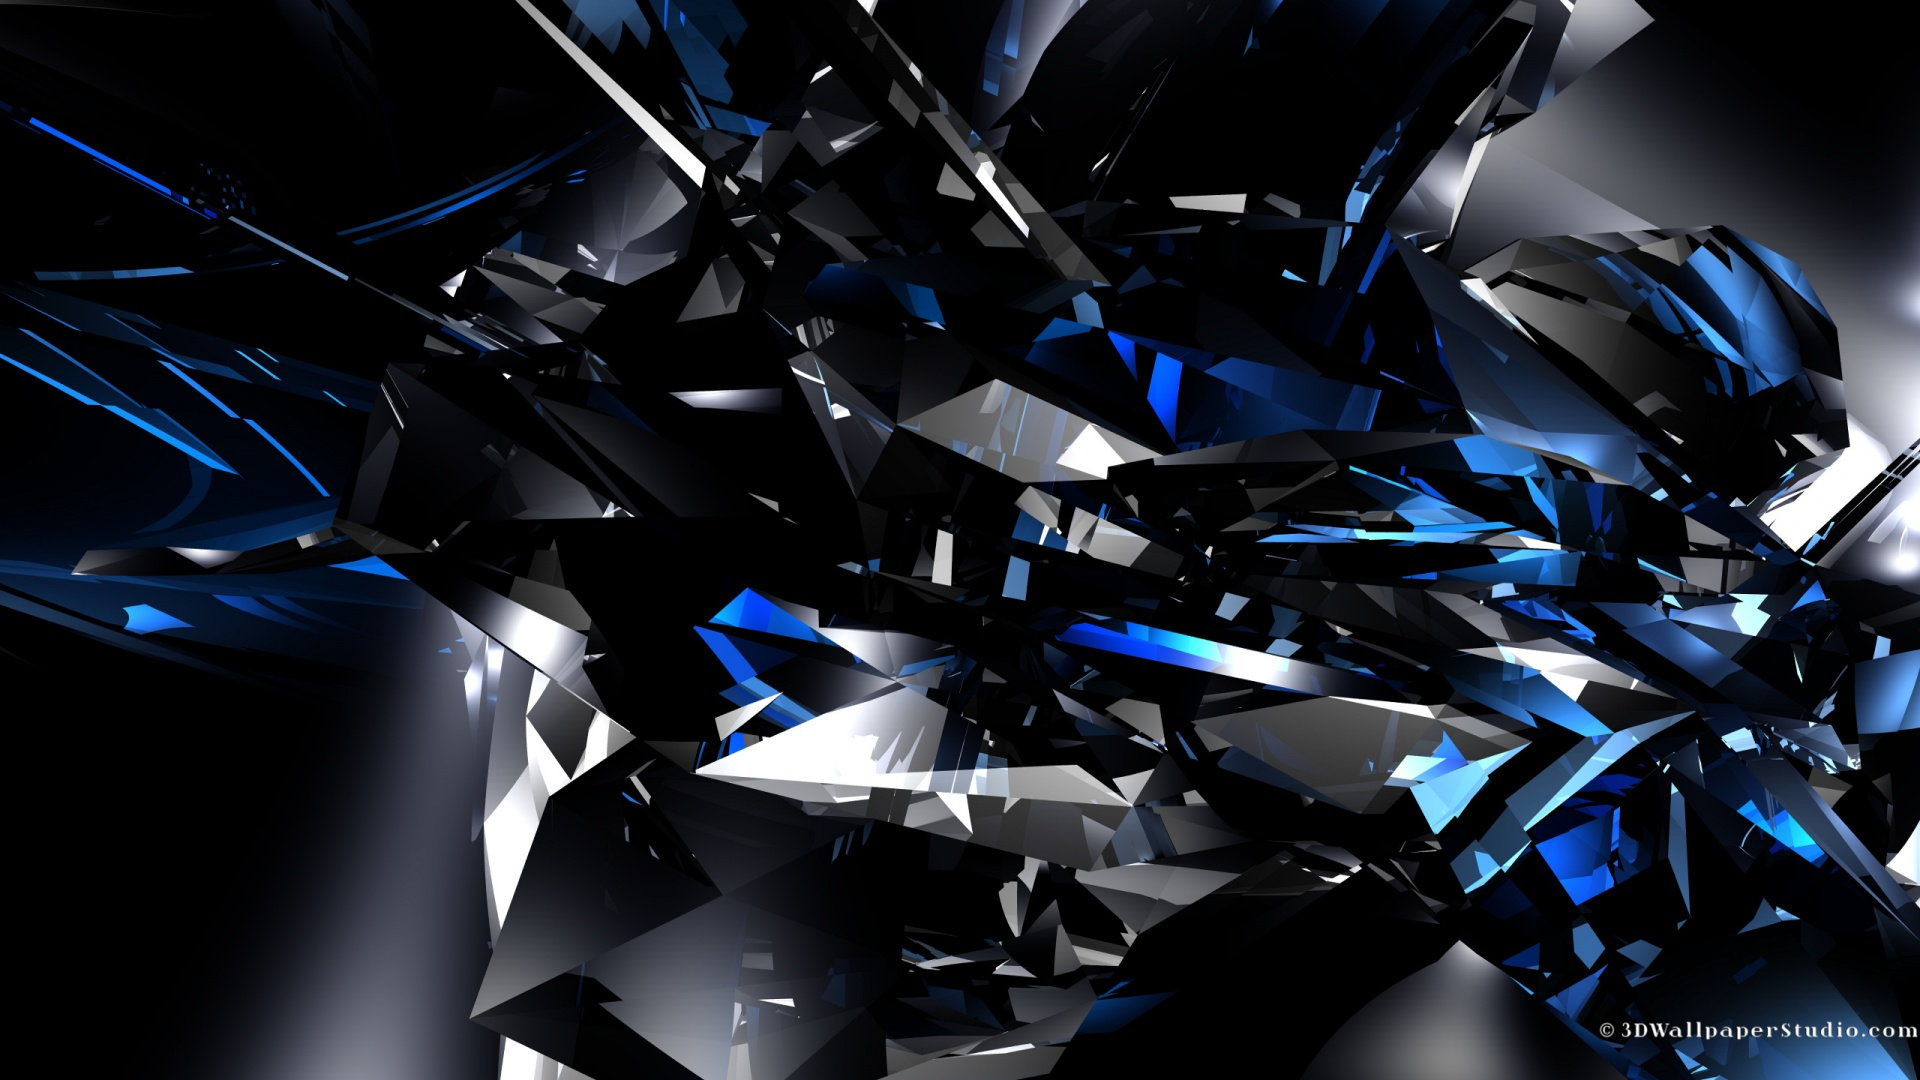 3D Wallpaper 3D blue crystals 1920 x 1080 1920x1080